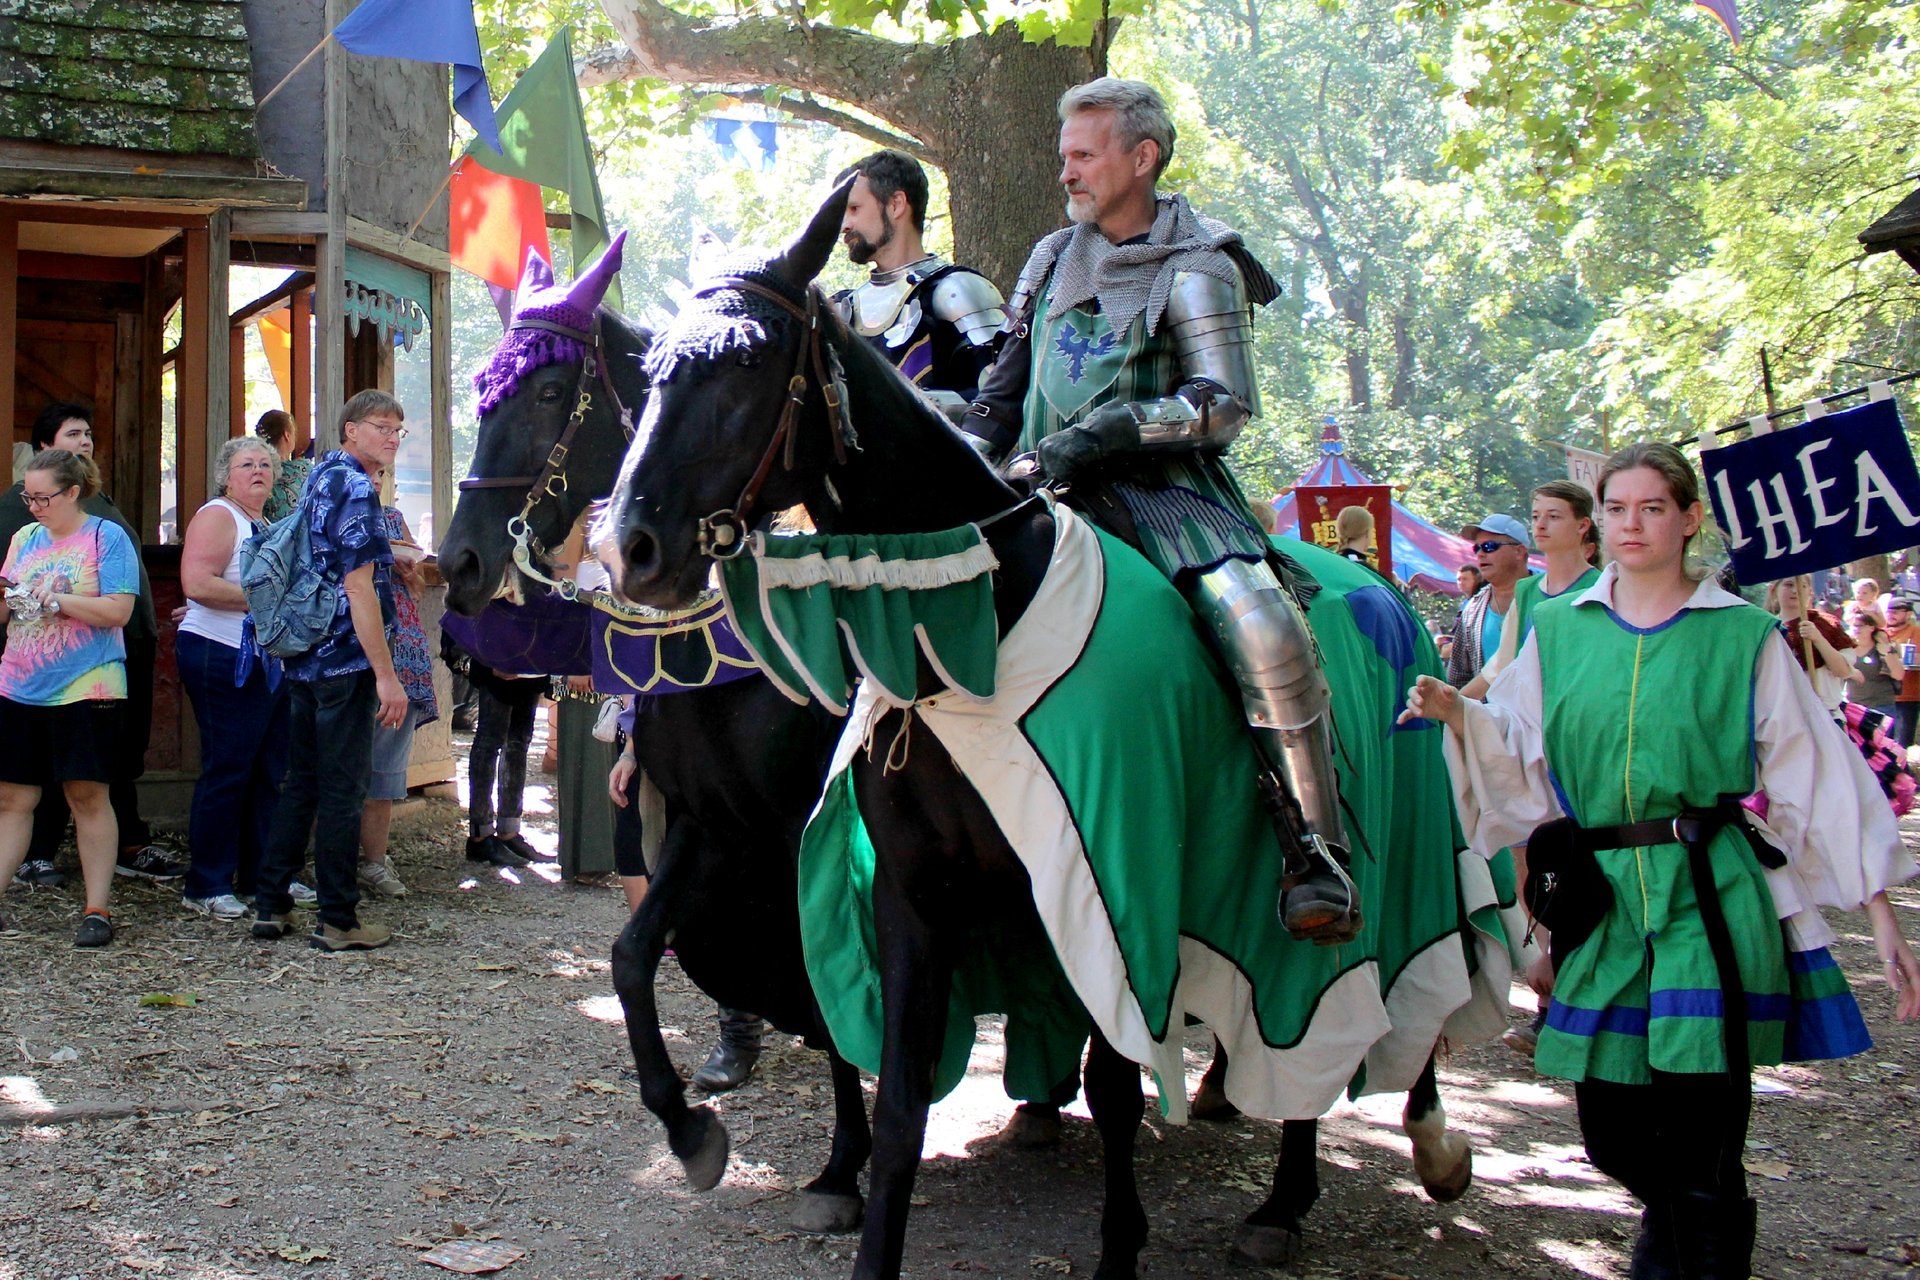 Kansas City Renaissance Festival in Kansas - Best Season 2020